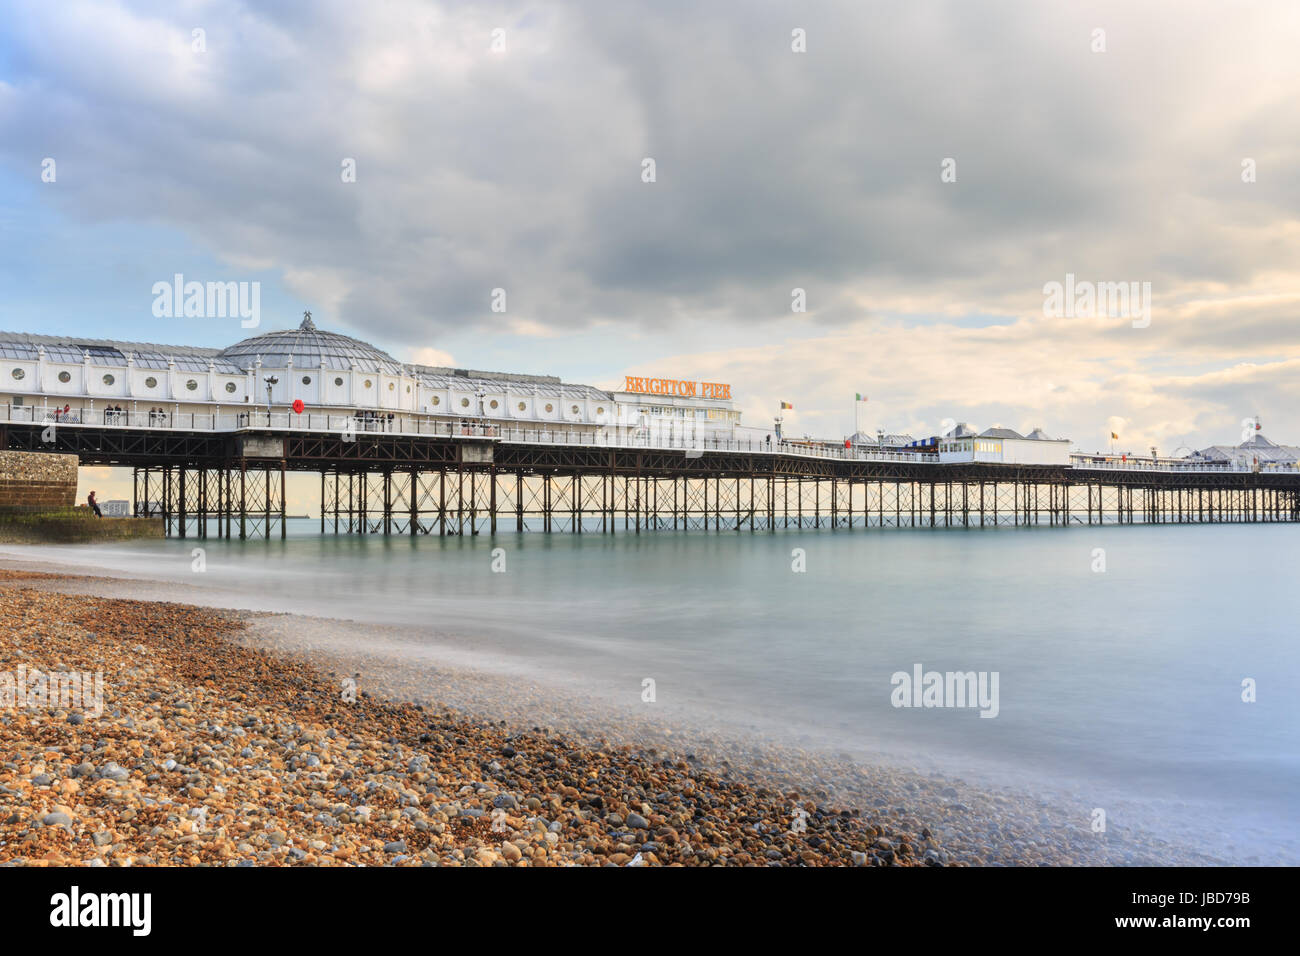 Brighton Palace Pier, Victorian Pleasure Pier in Brighton, England, UK - Stock Image